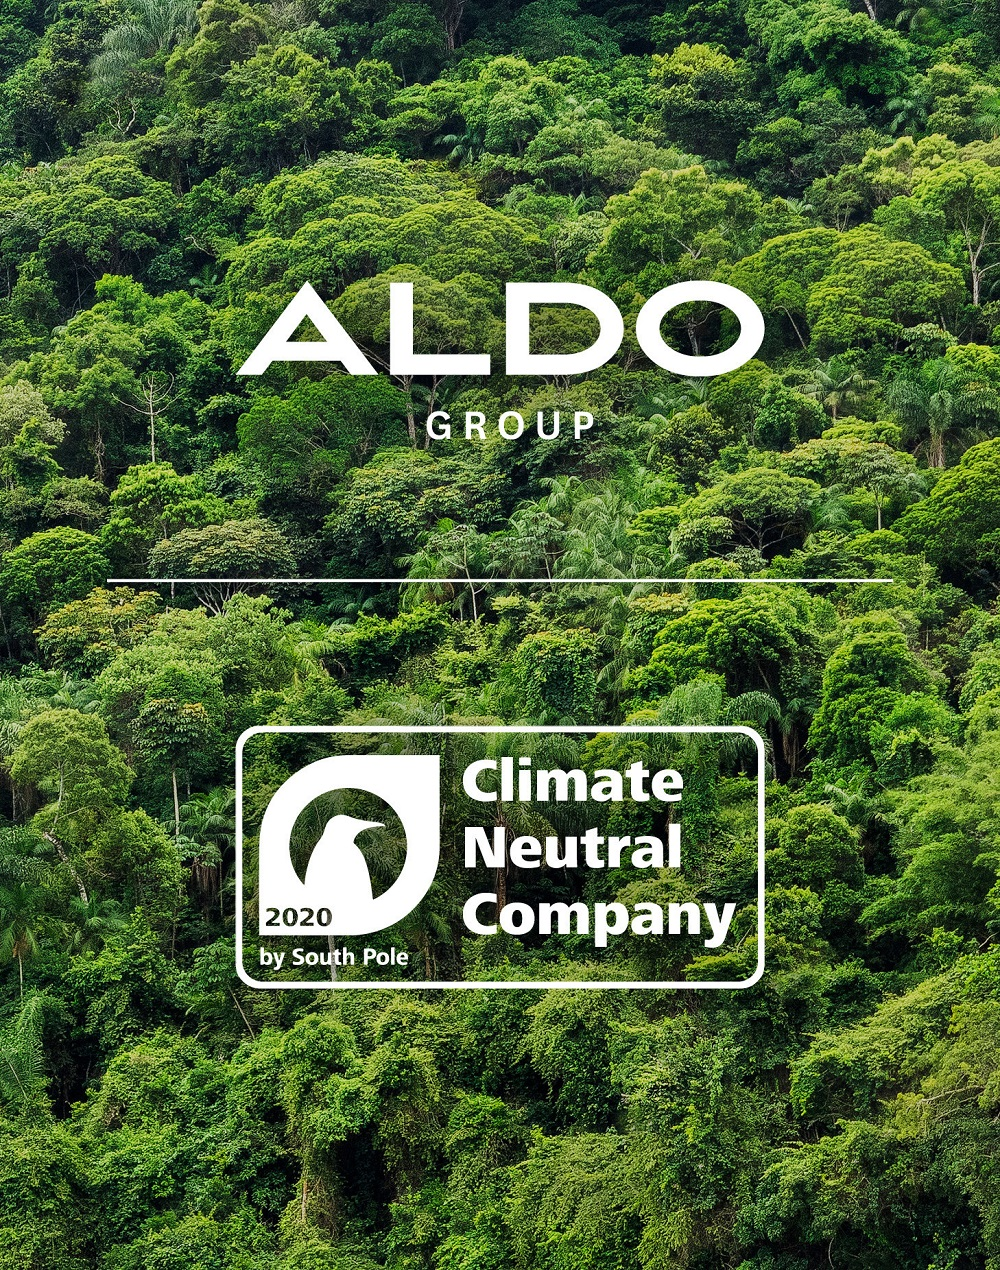 Fashion footwear firm Aldo Group is extending its sustainable commitment by investing in a nature-based project that supports biodiversity.